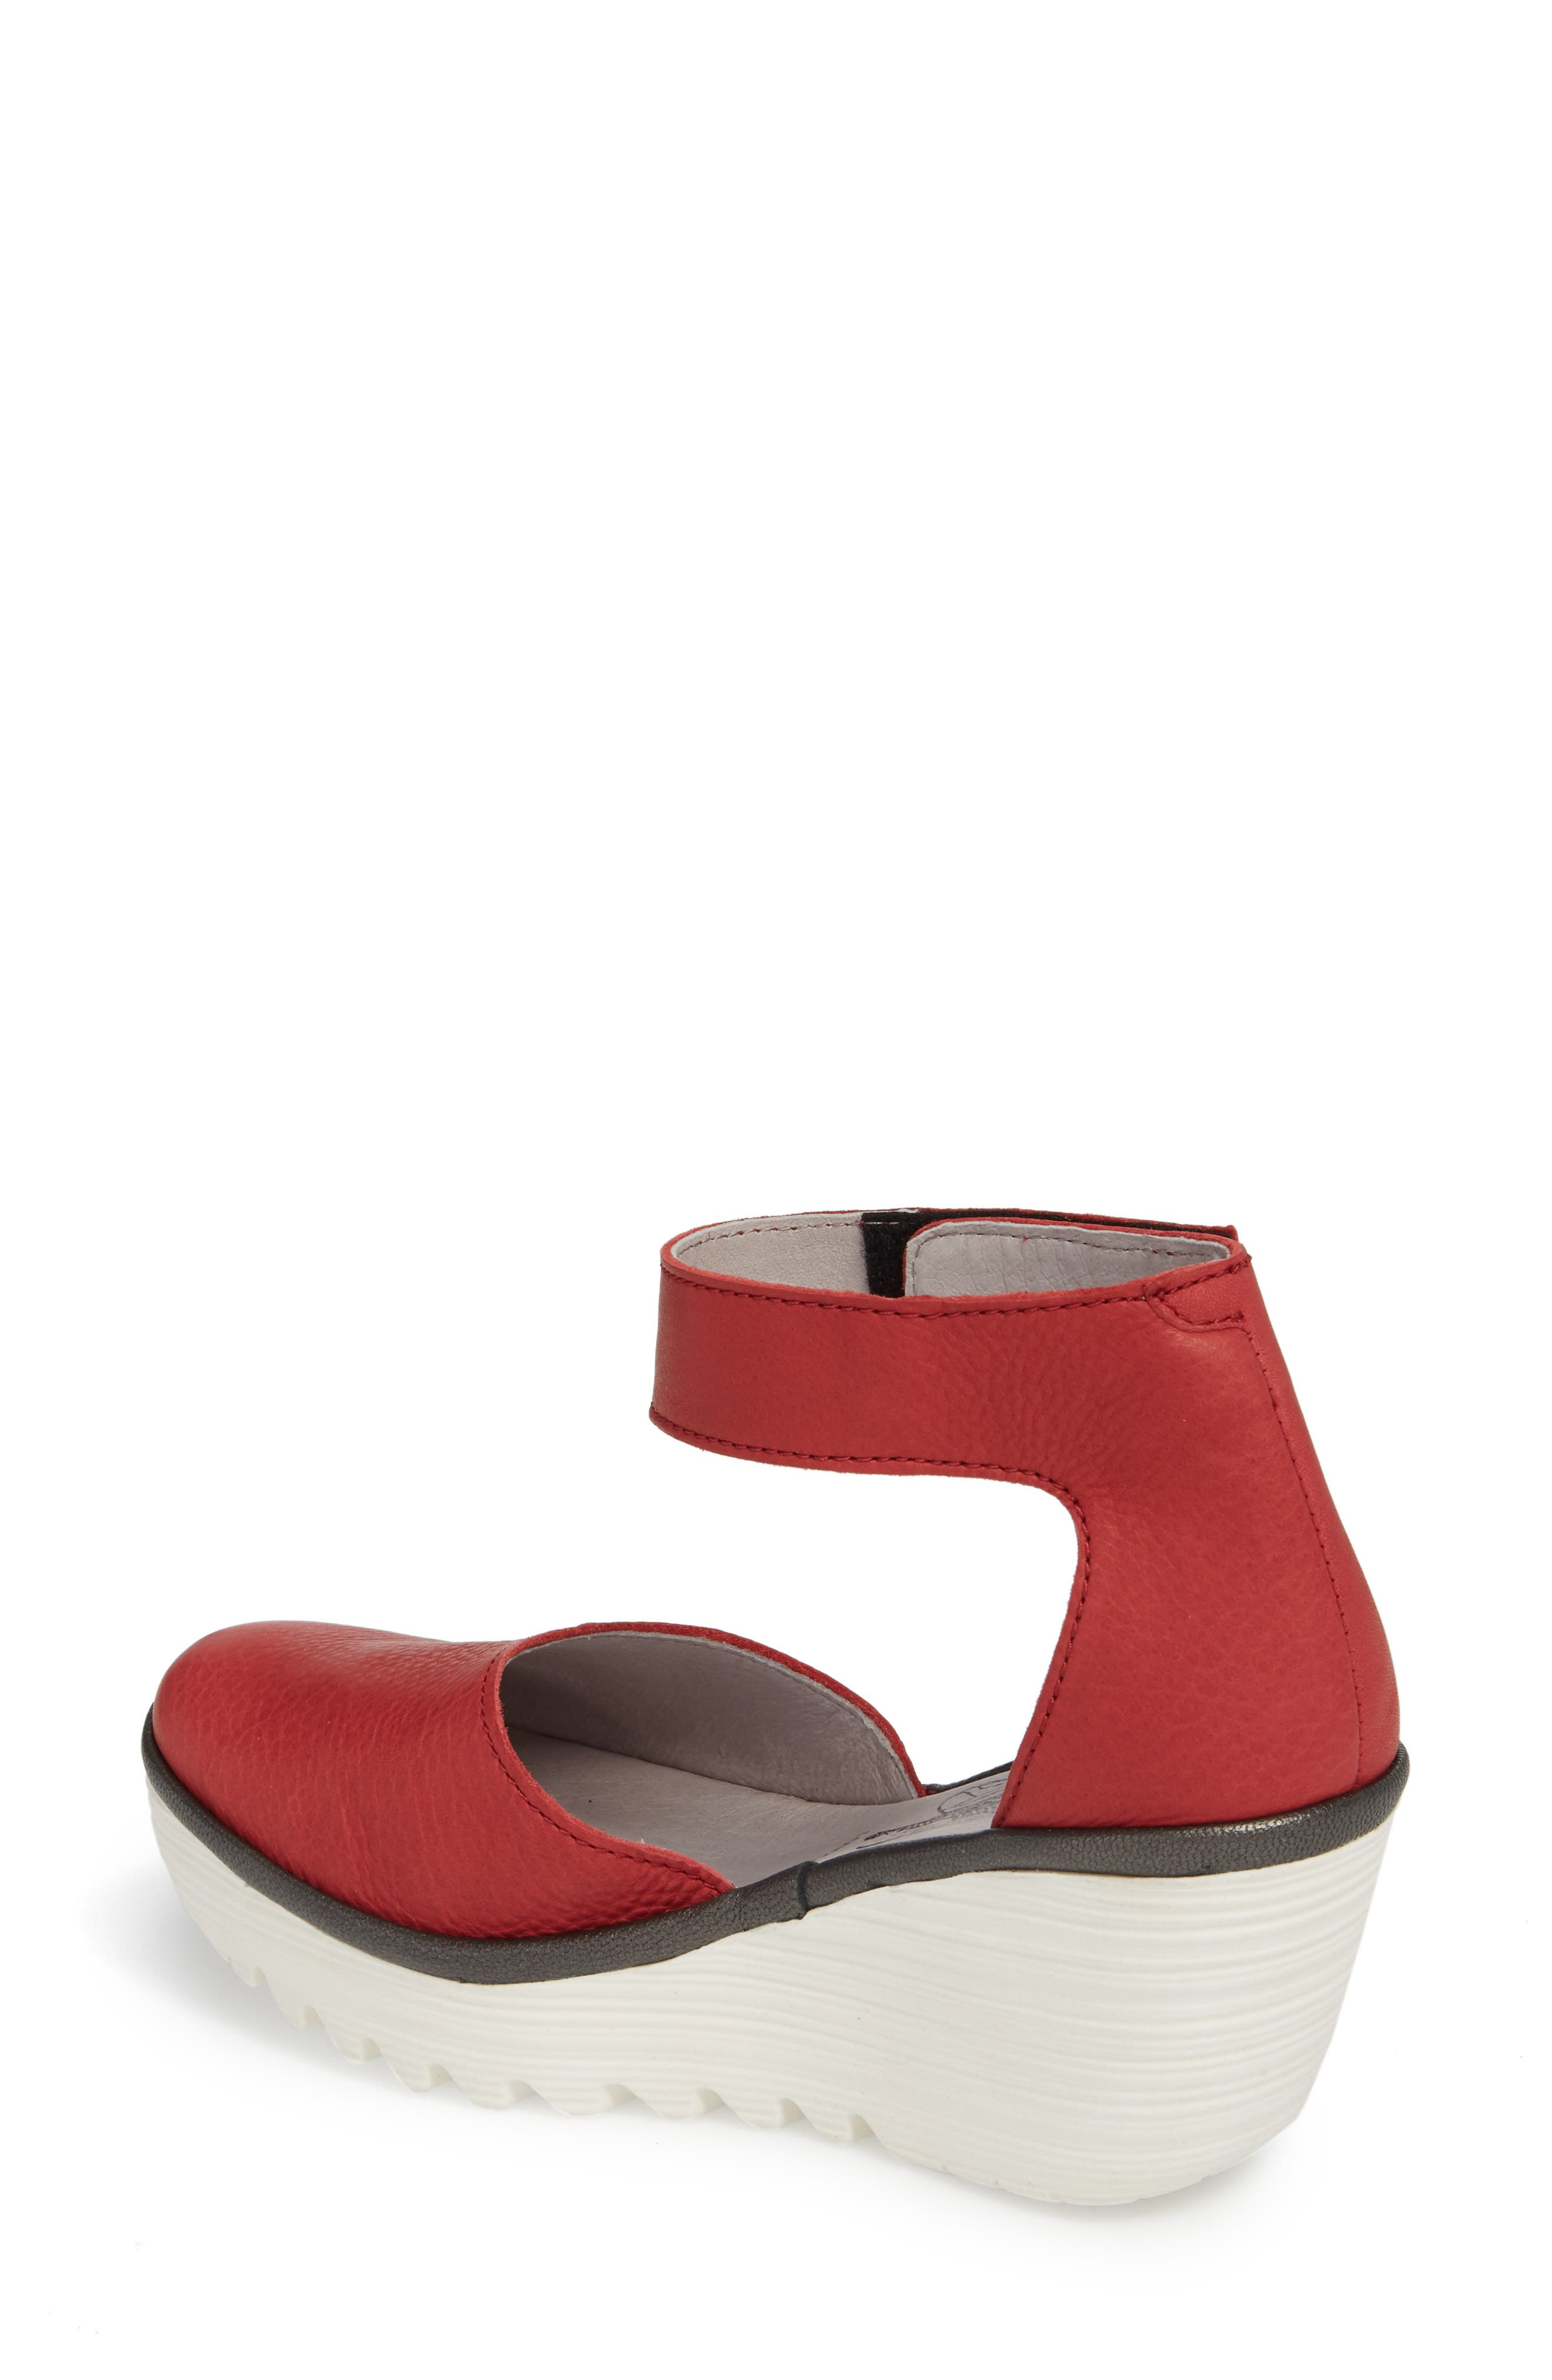 Yand Wedge Pump,                             Alternate thumbnail 2, color,                             RED/ OFF WHITE BRITO LEATHER